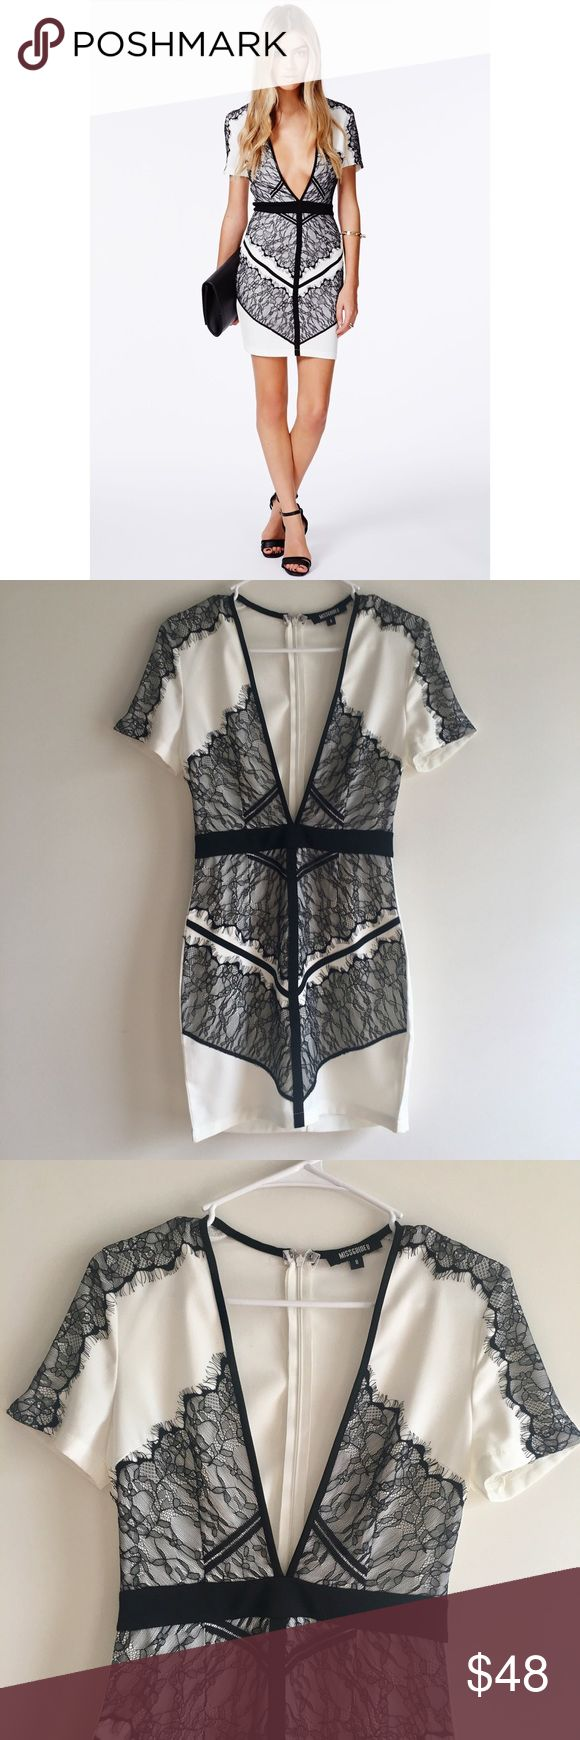 Missguided White and Black Lace Mini Dress Beautiful and sexy dress, perfect for a night out! Body con style. Size US 4. 100% polyester. Never worn or washed. There is a tiny flaw on the back of the dress, pictured above! Missguided Dresses Mini